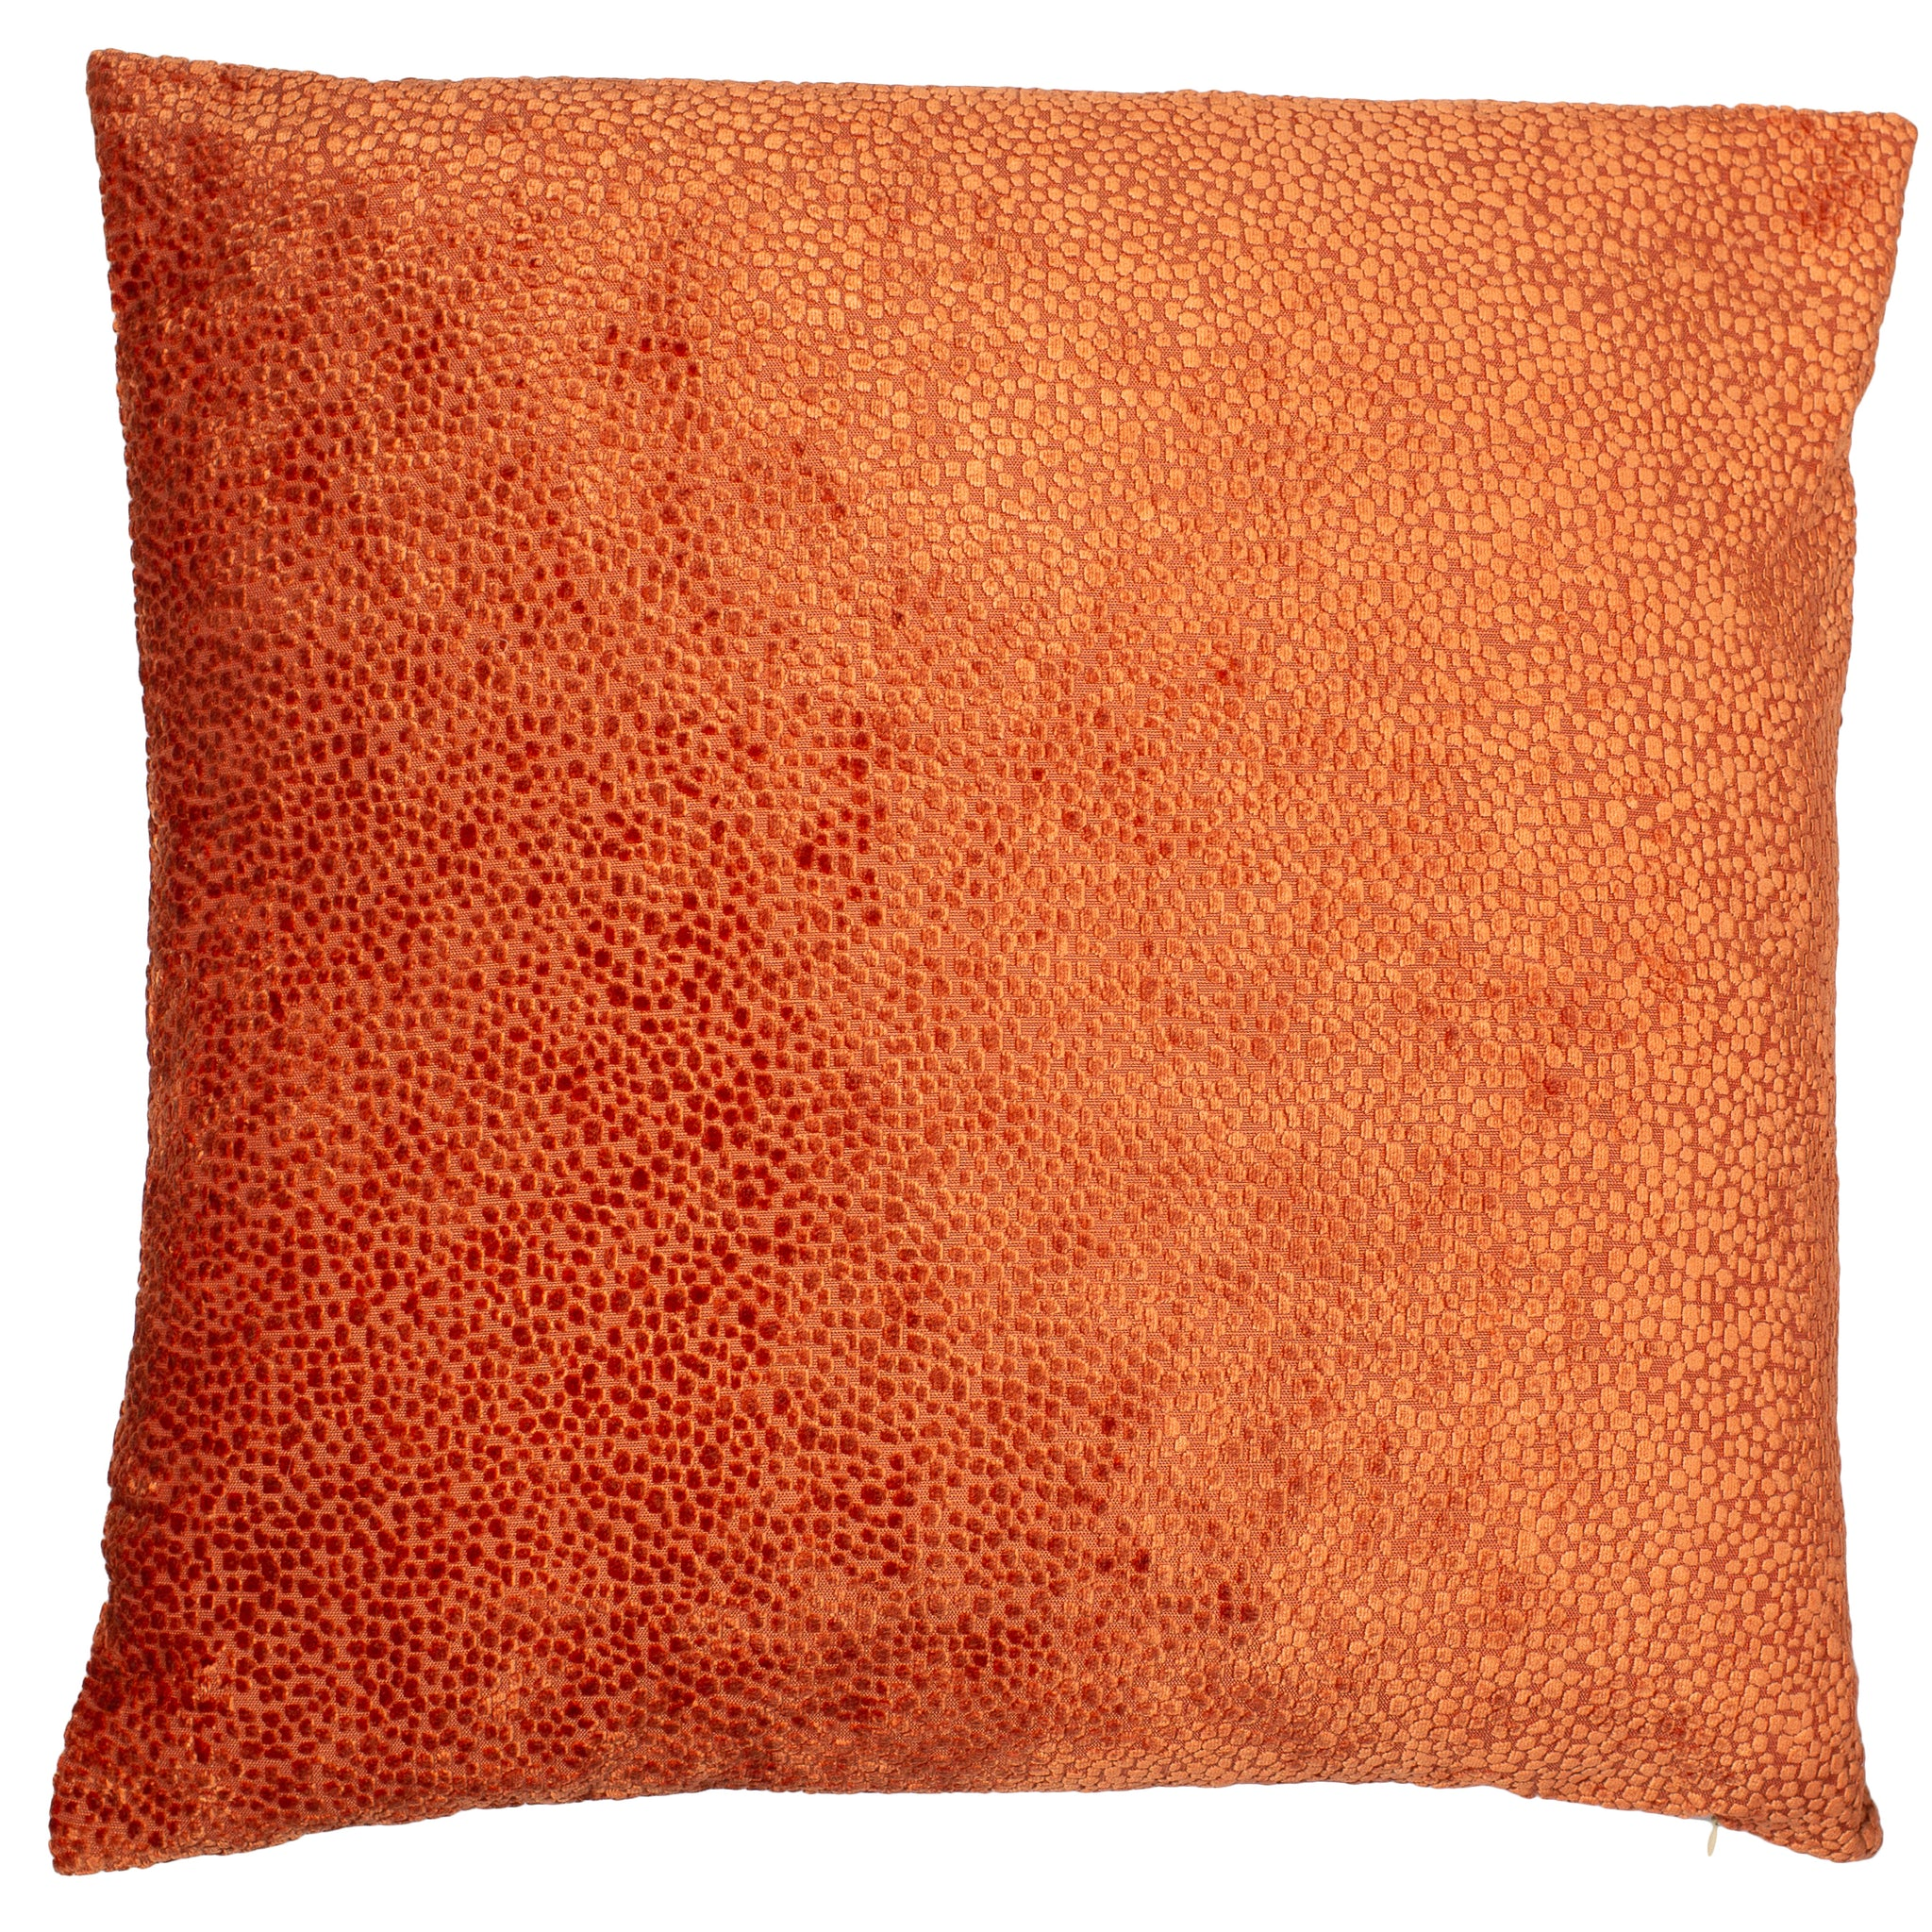 Malini Bingham Orange Cushion-Cushion-The Modern Home Shop